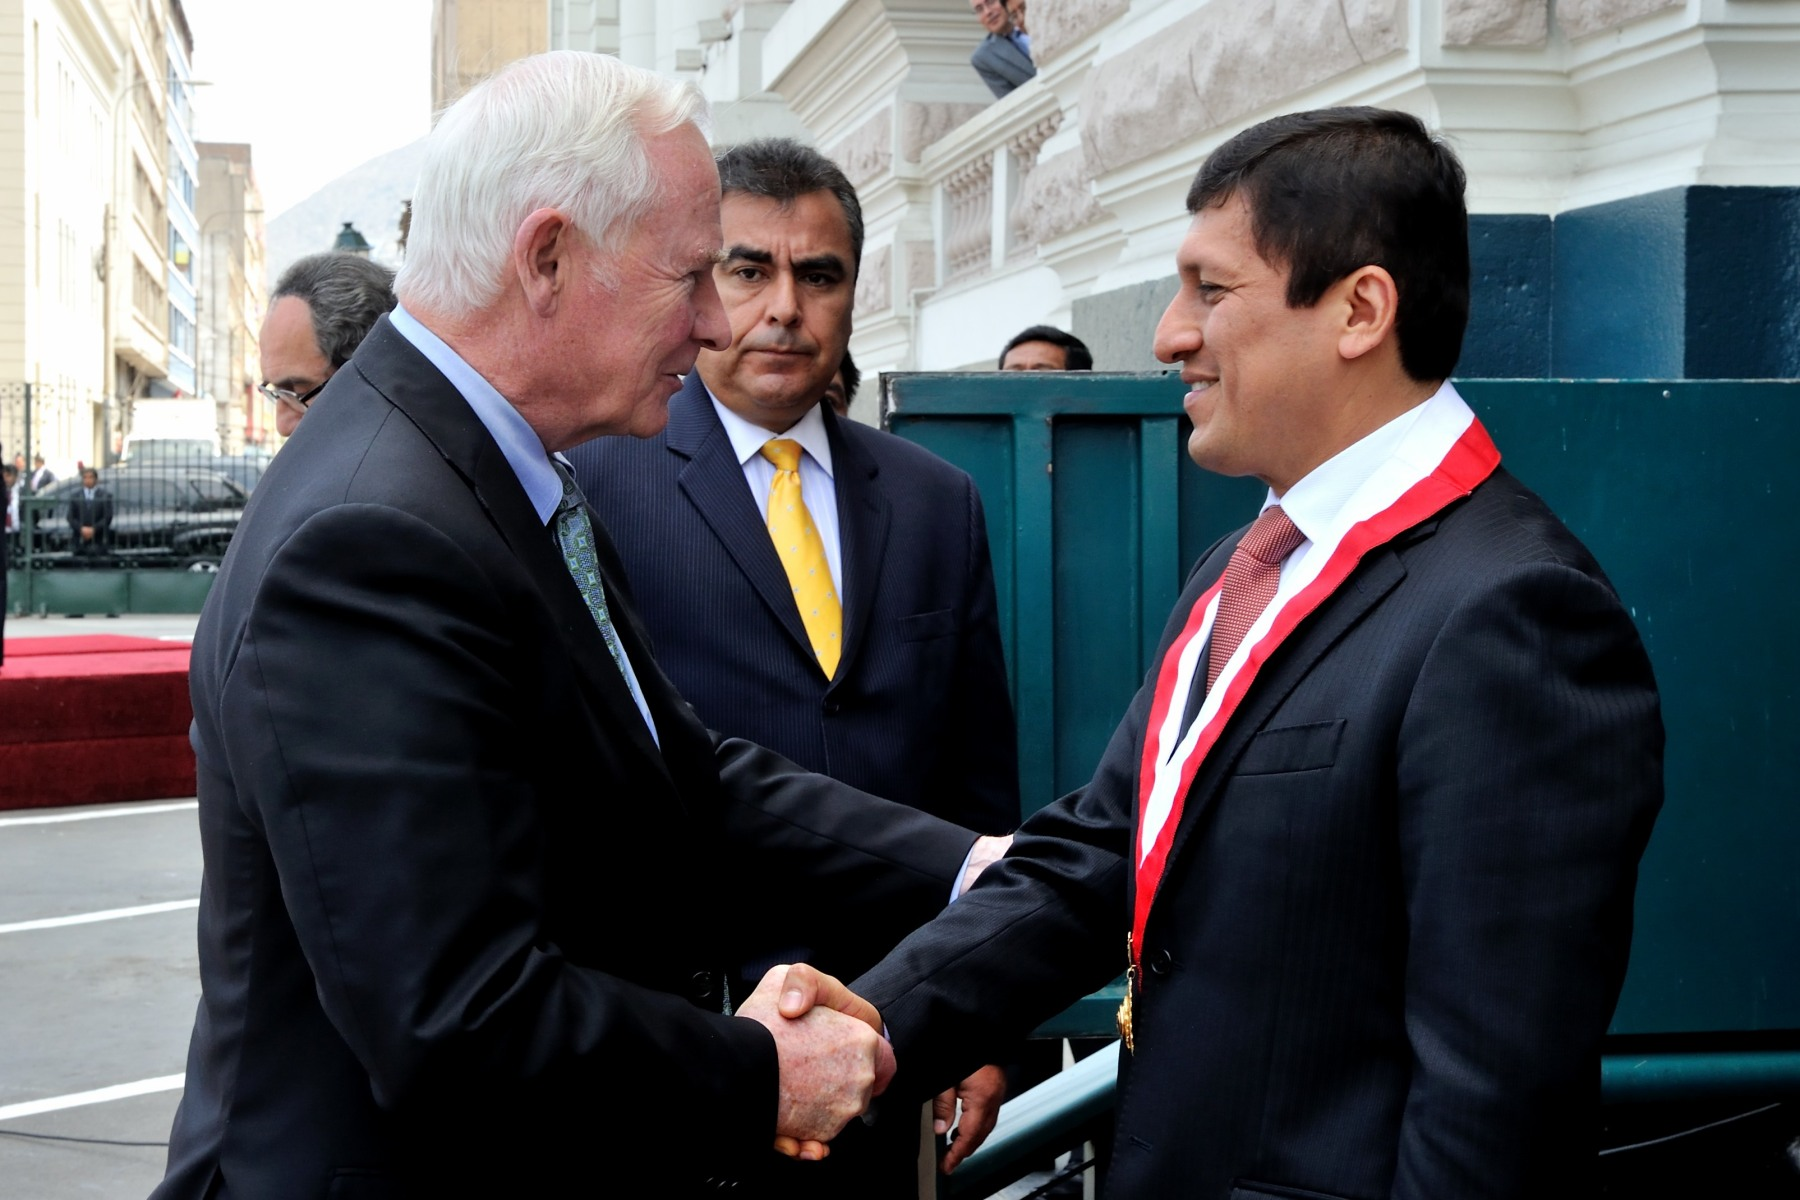 The Governor General welcomed His Excellency Victor Isla Rojas, President of the Congress of the Republic of Peru.